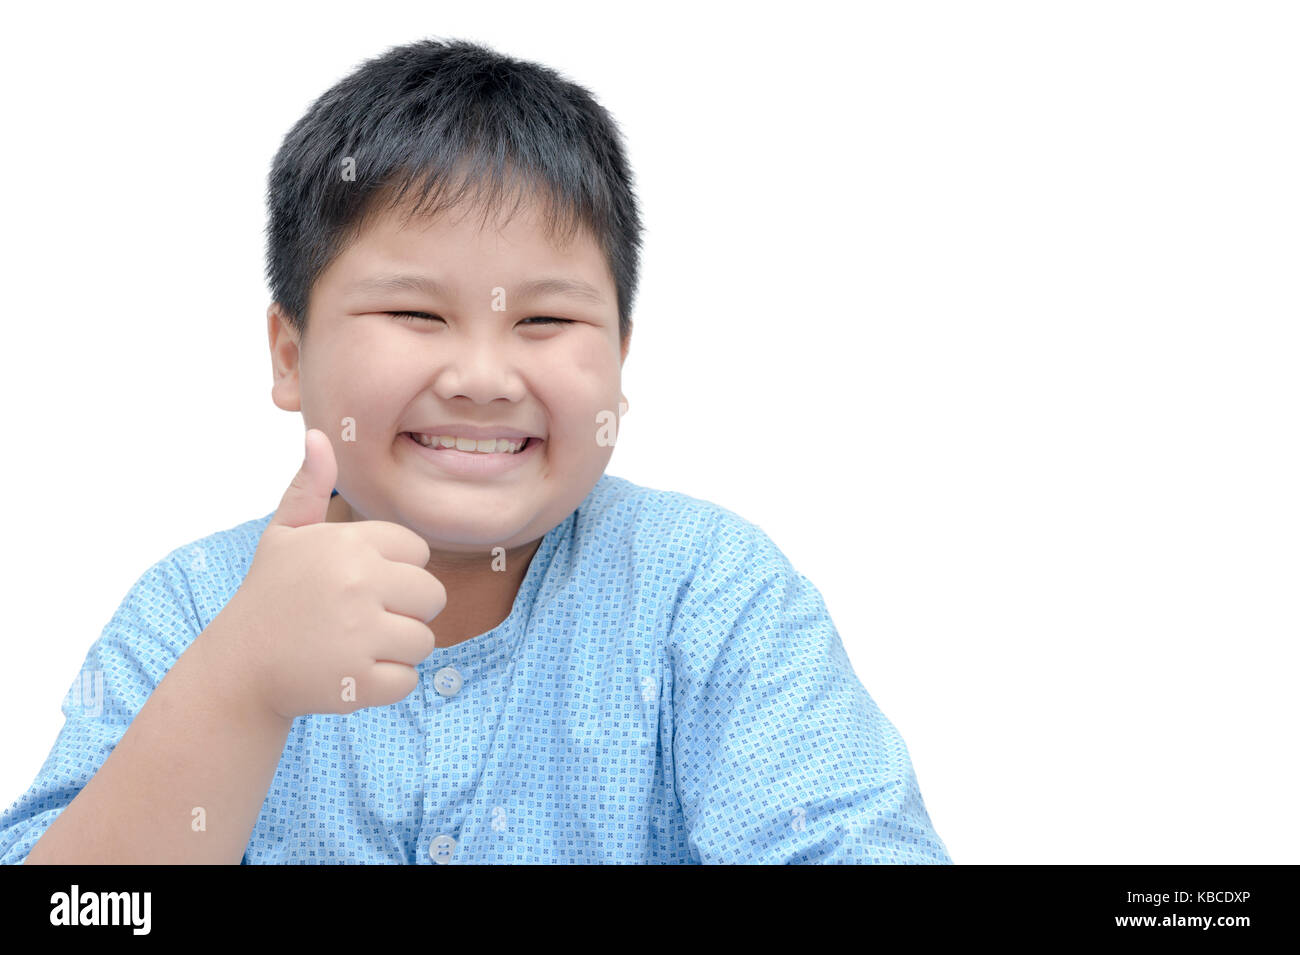 Portrait of asian happy fat boy showing thumbs up gesture, isolated over  white background